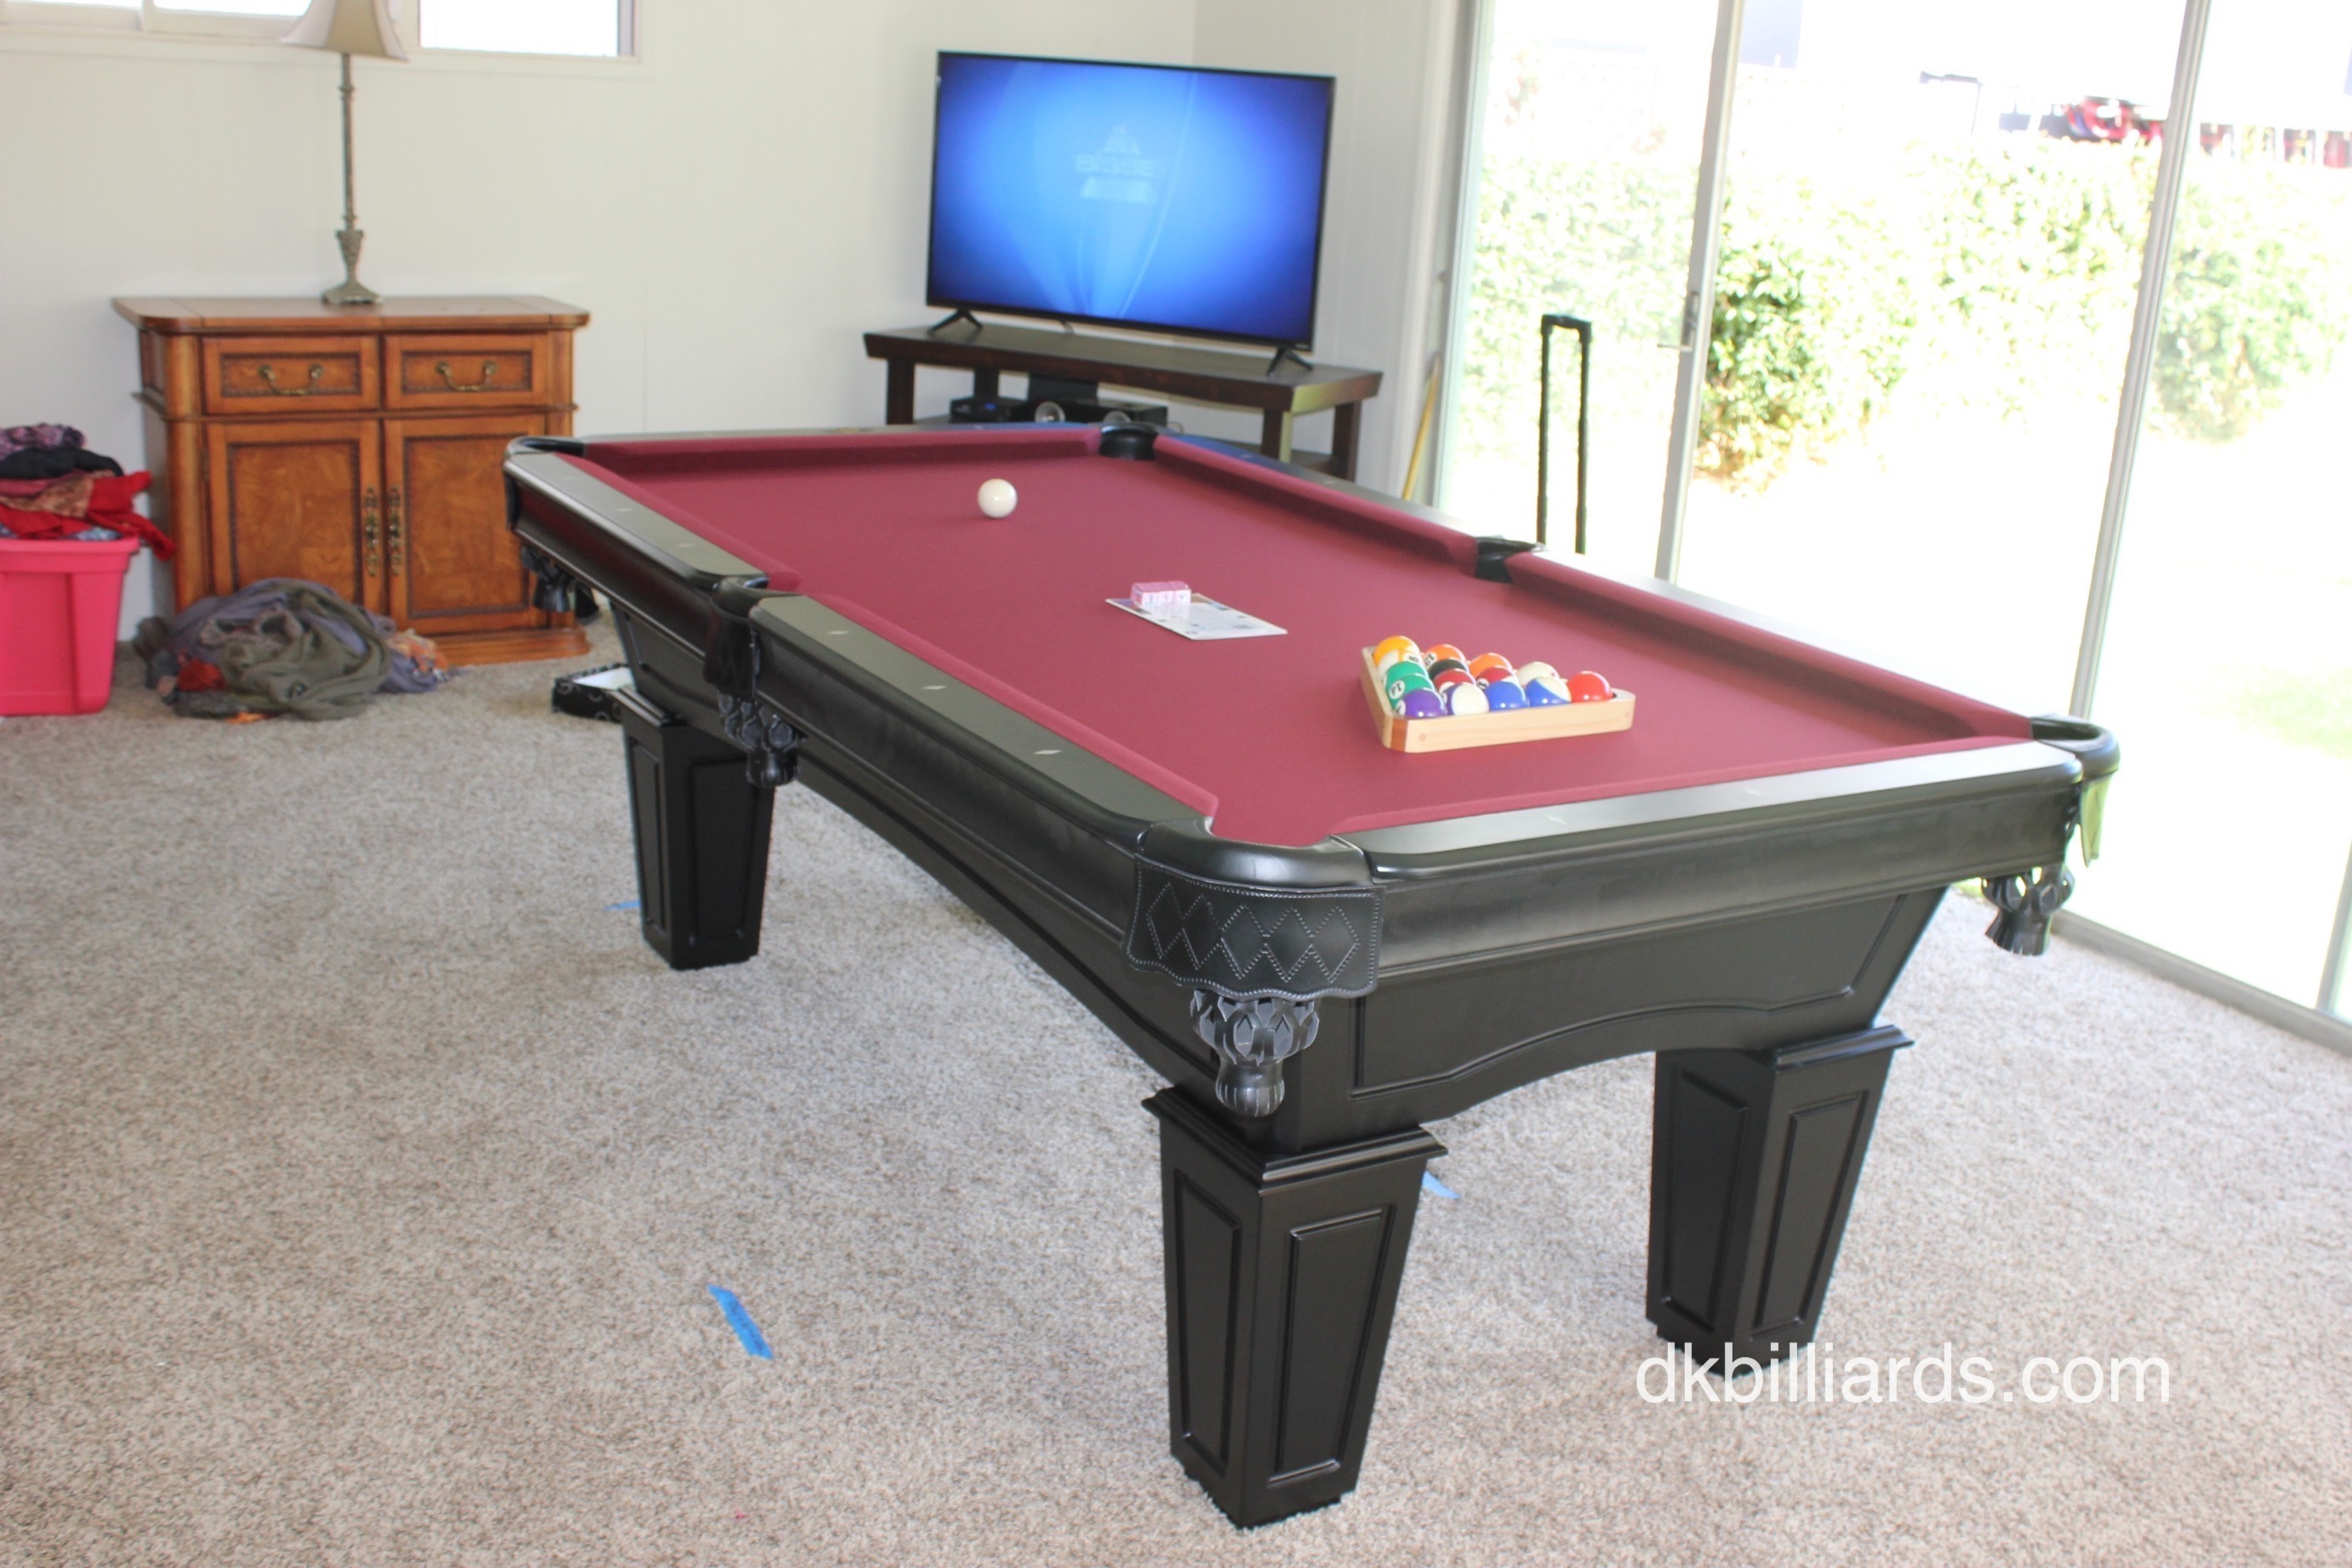 Let DK Billiards Help Find A Pool Table That Fits Your Budget And Style.  Our Showroom Has Many Different Models For You To Choose From.